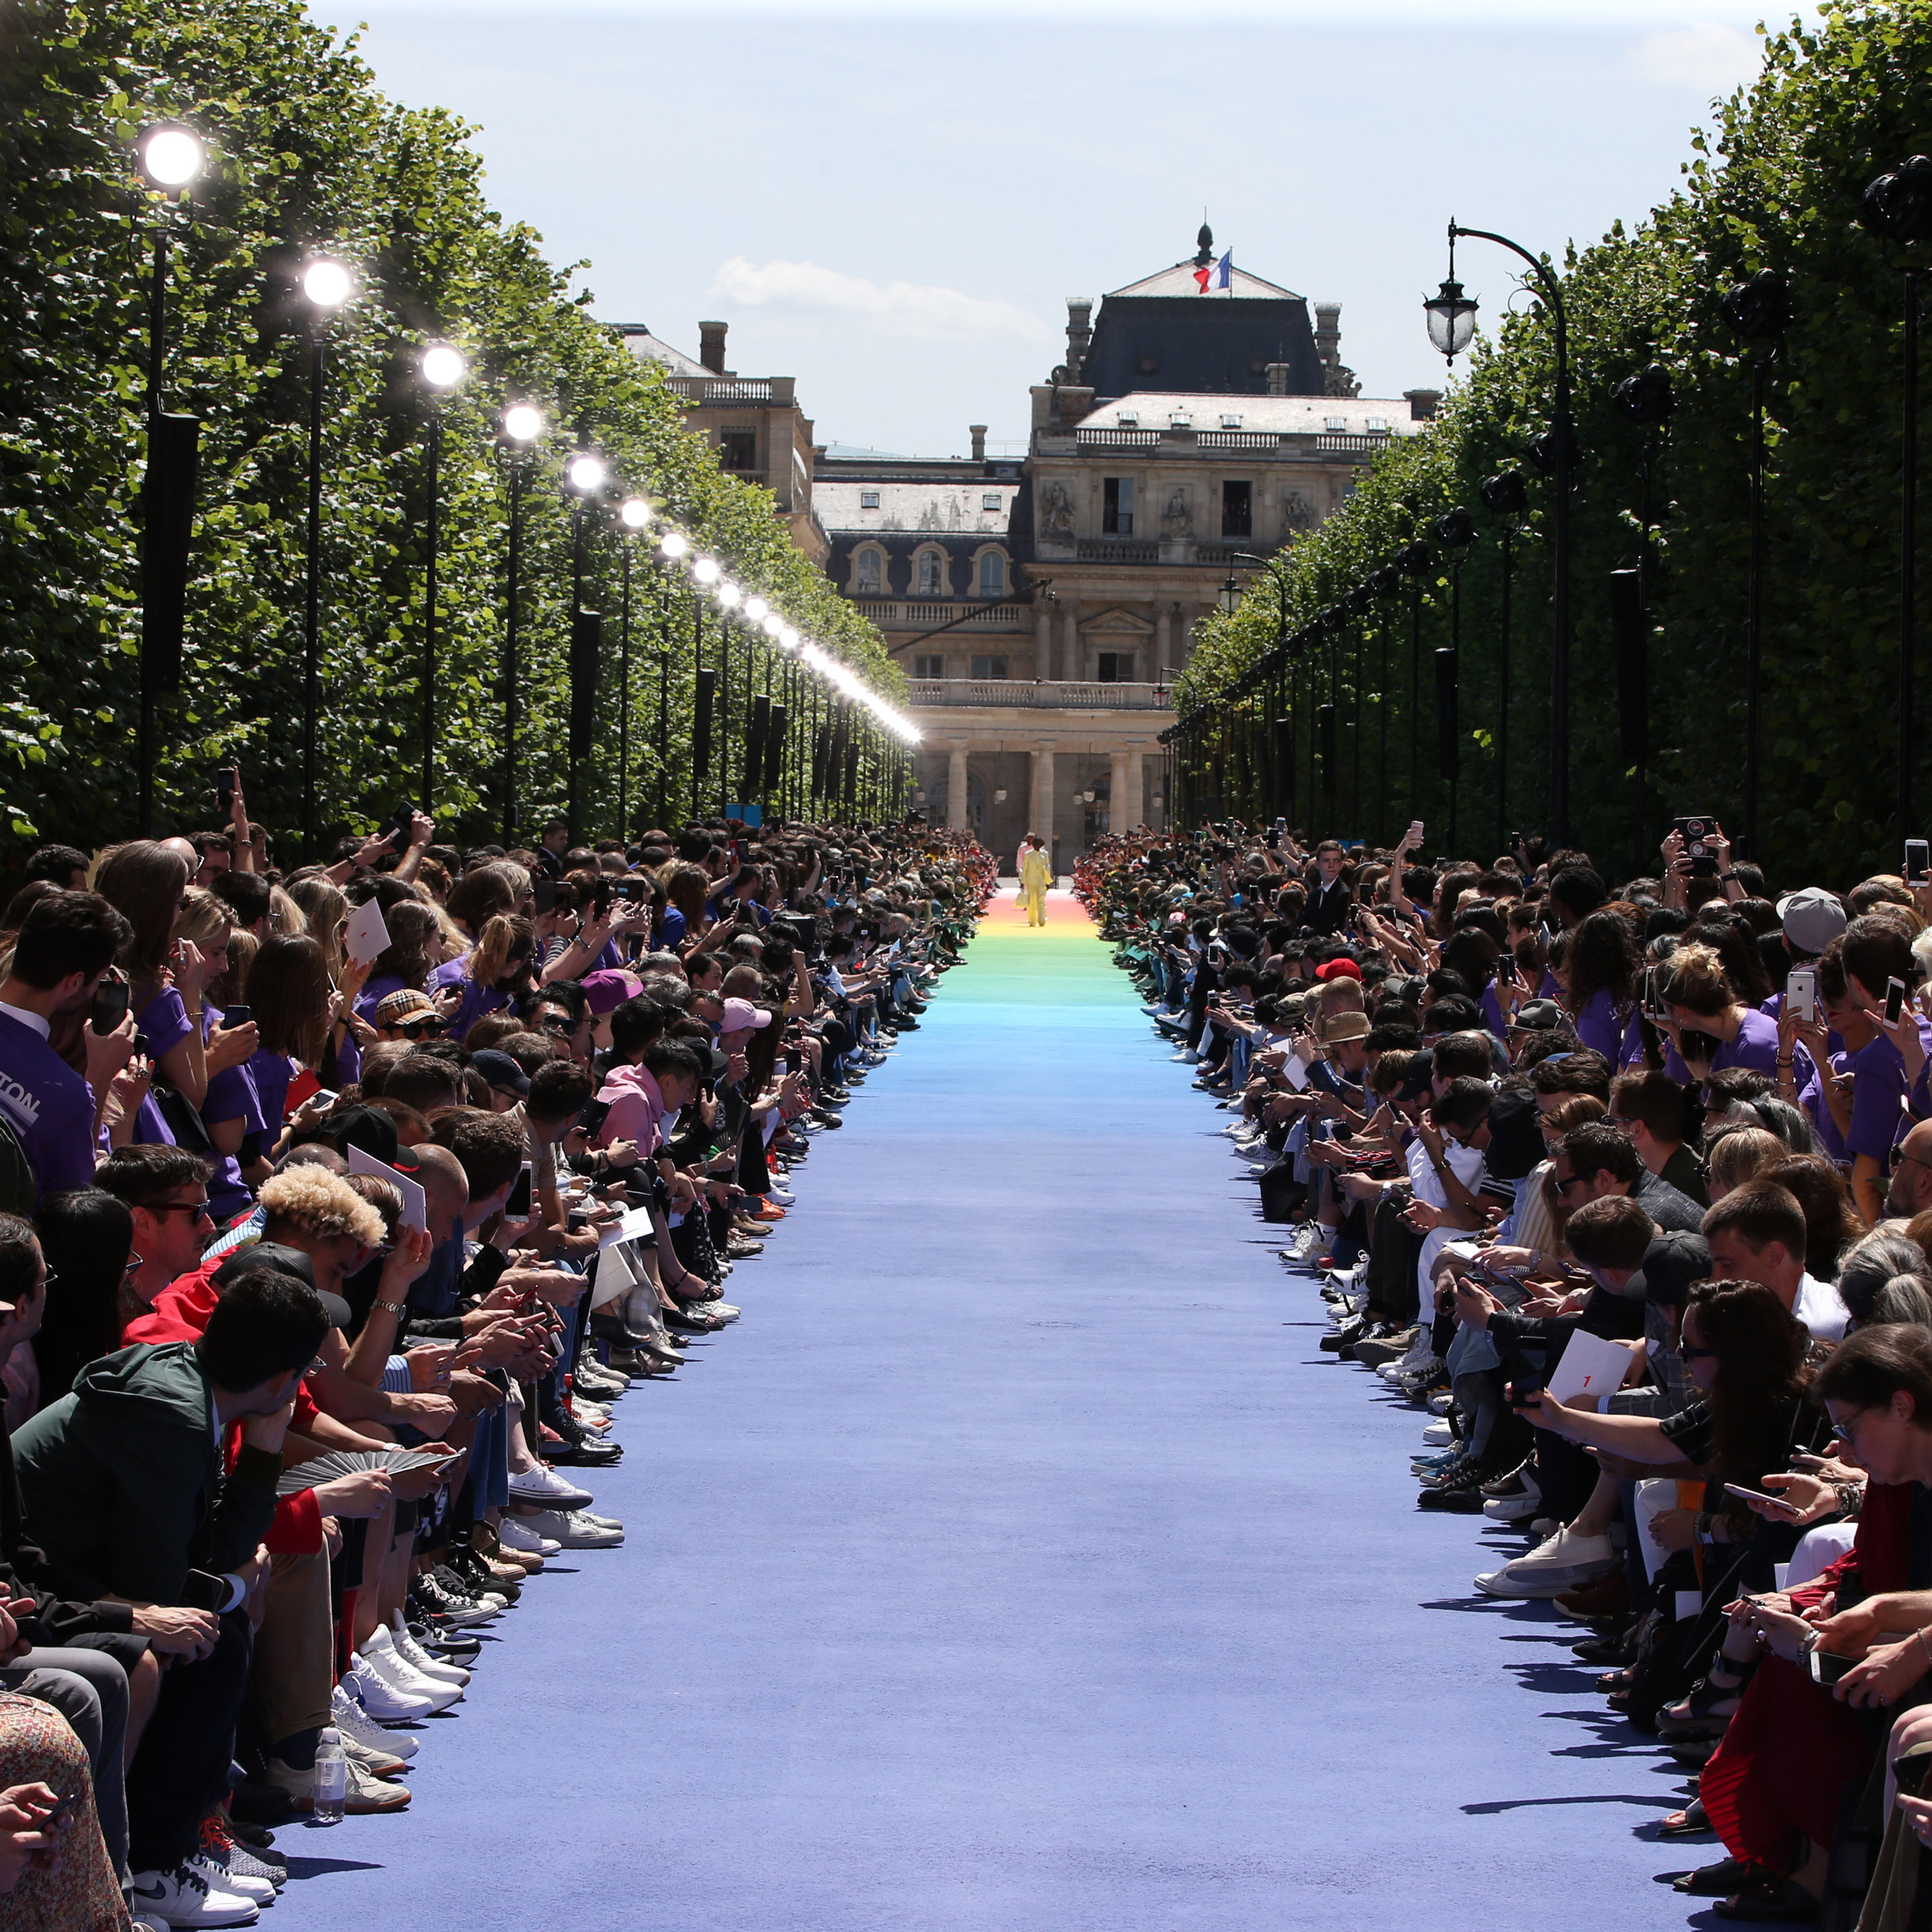 Virgil Abloh makes debut for Louis Vuitton at Paris with rainbow runway